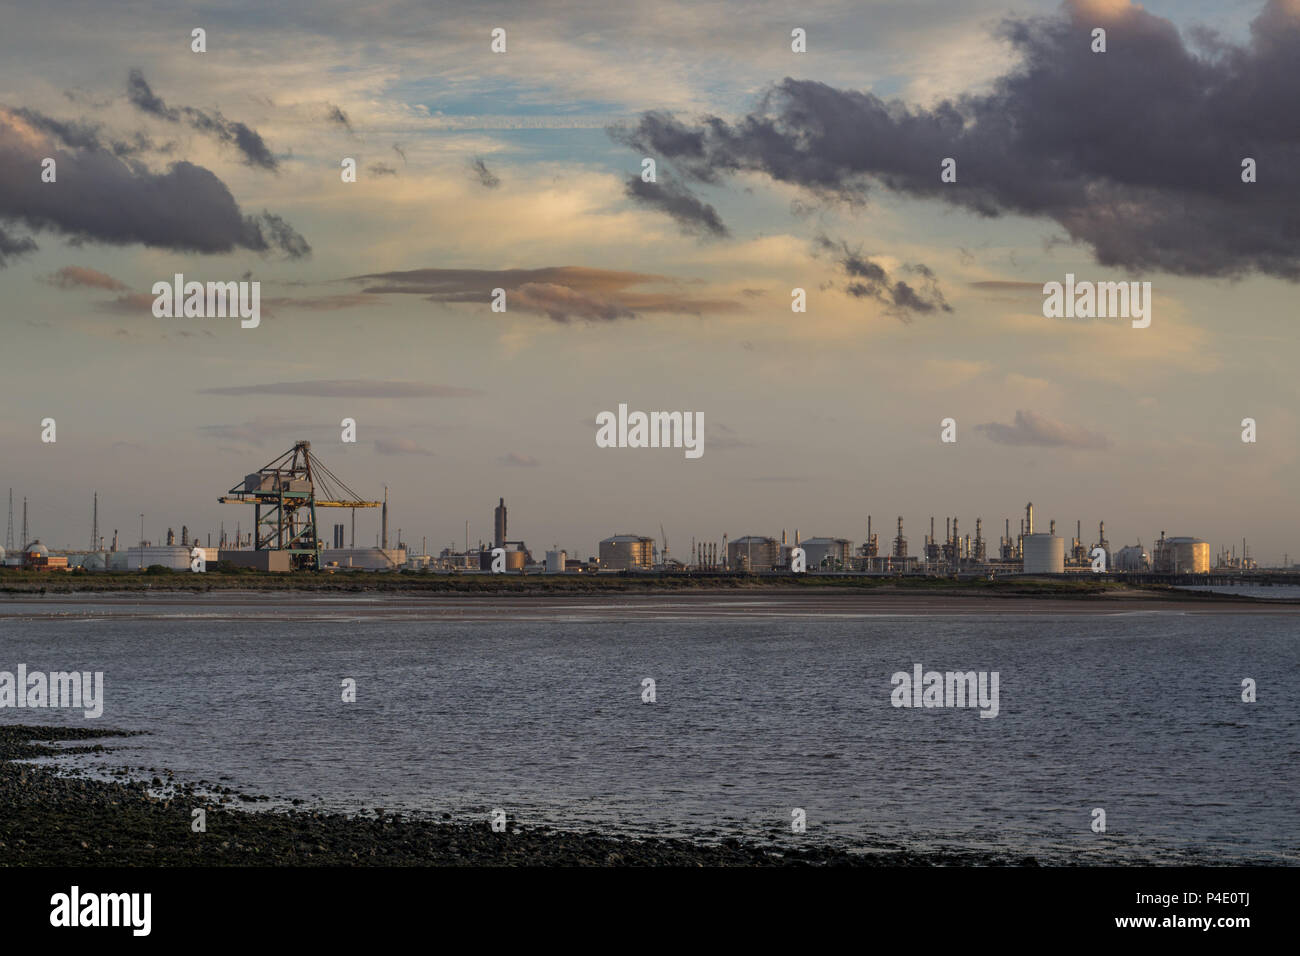 Industrial background by the north east coast of England. South Gare at Redcar. - Stock Image